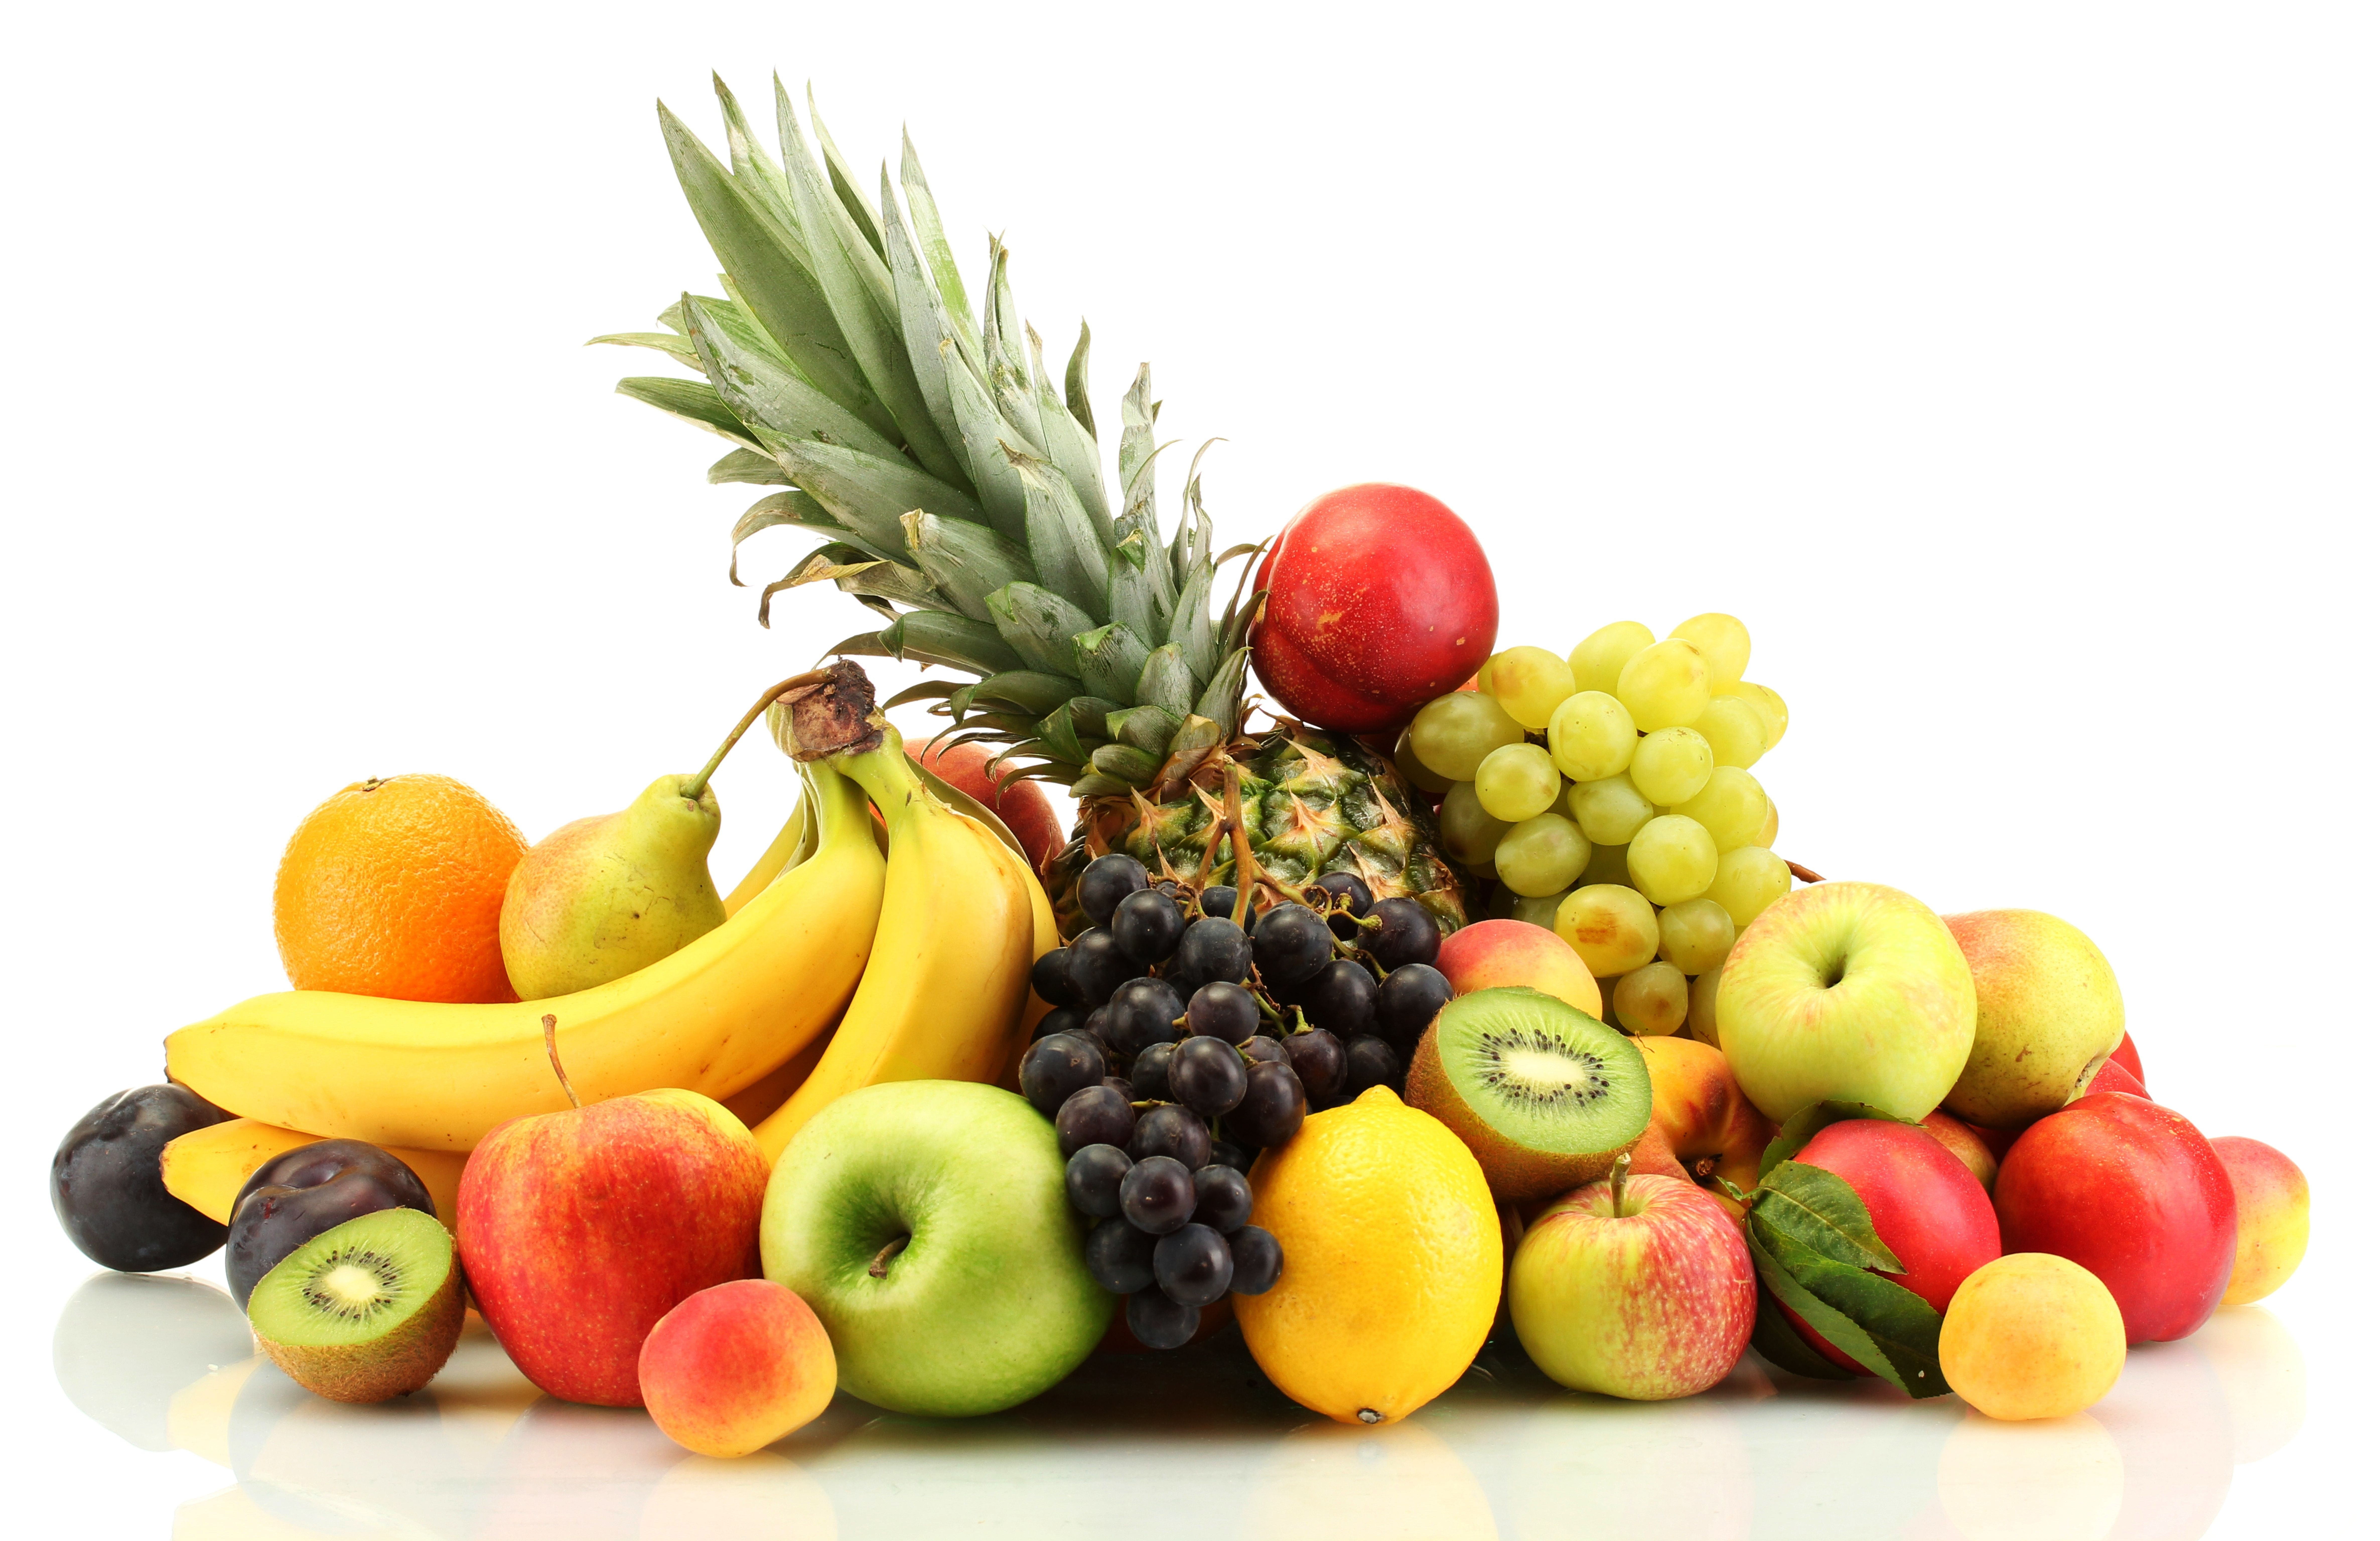 Fresh Fruit Collection 553.36 Kb